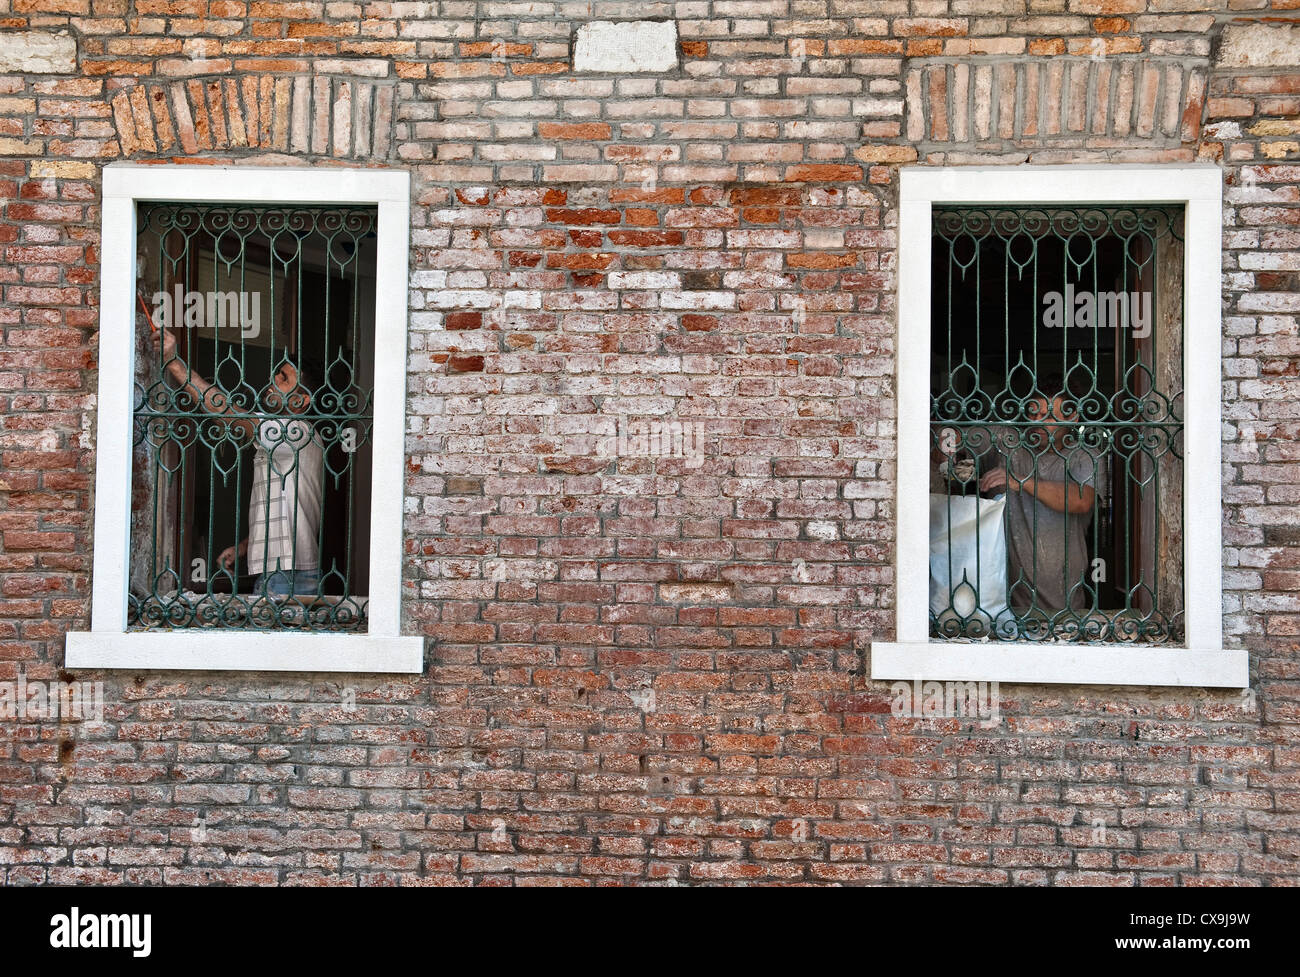 Venice, Italy. Builders working on an old Venetian house - Stock Image